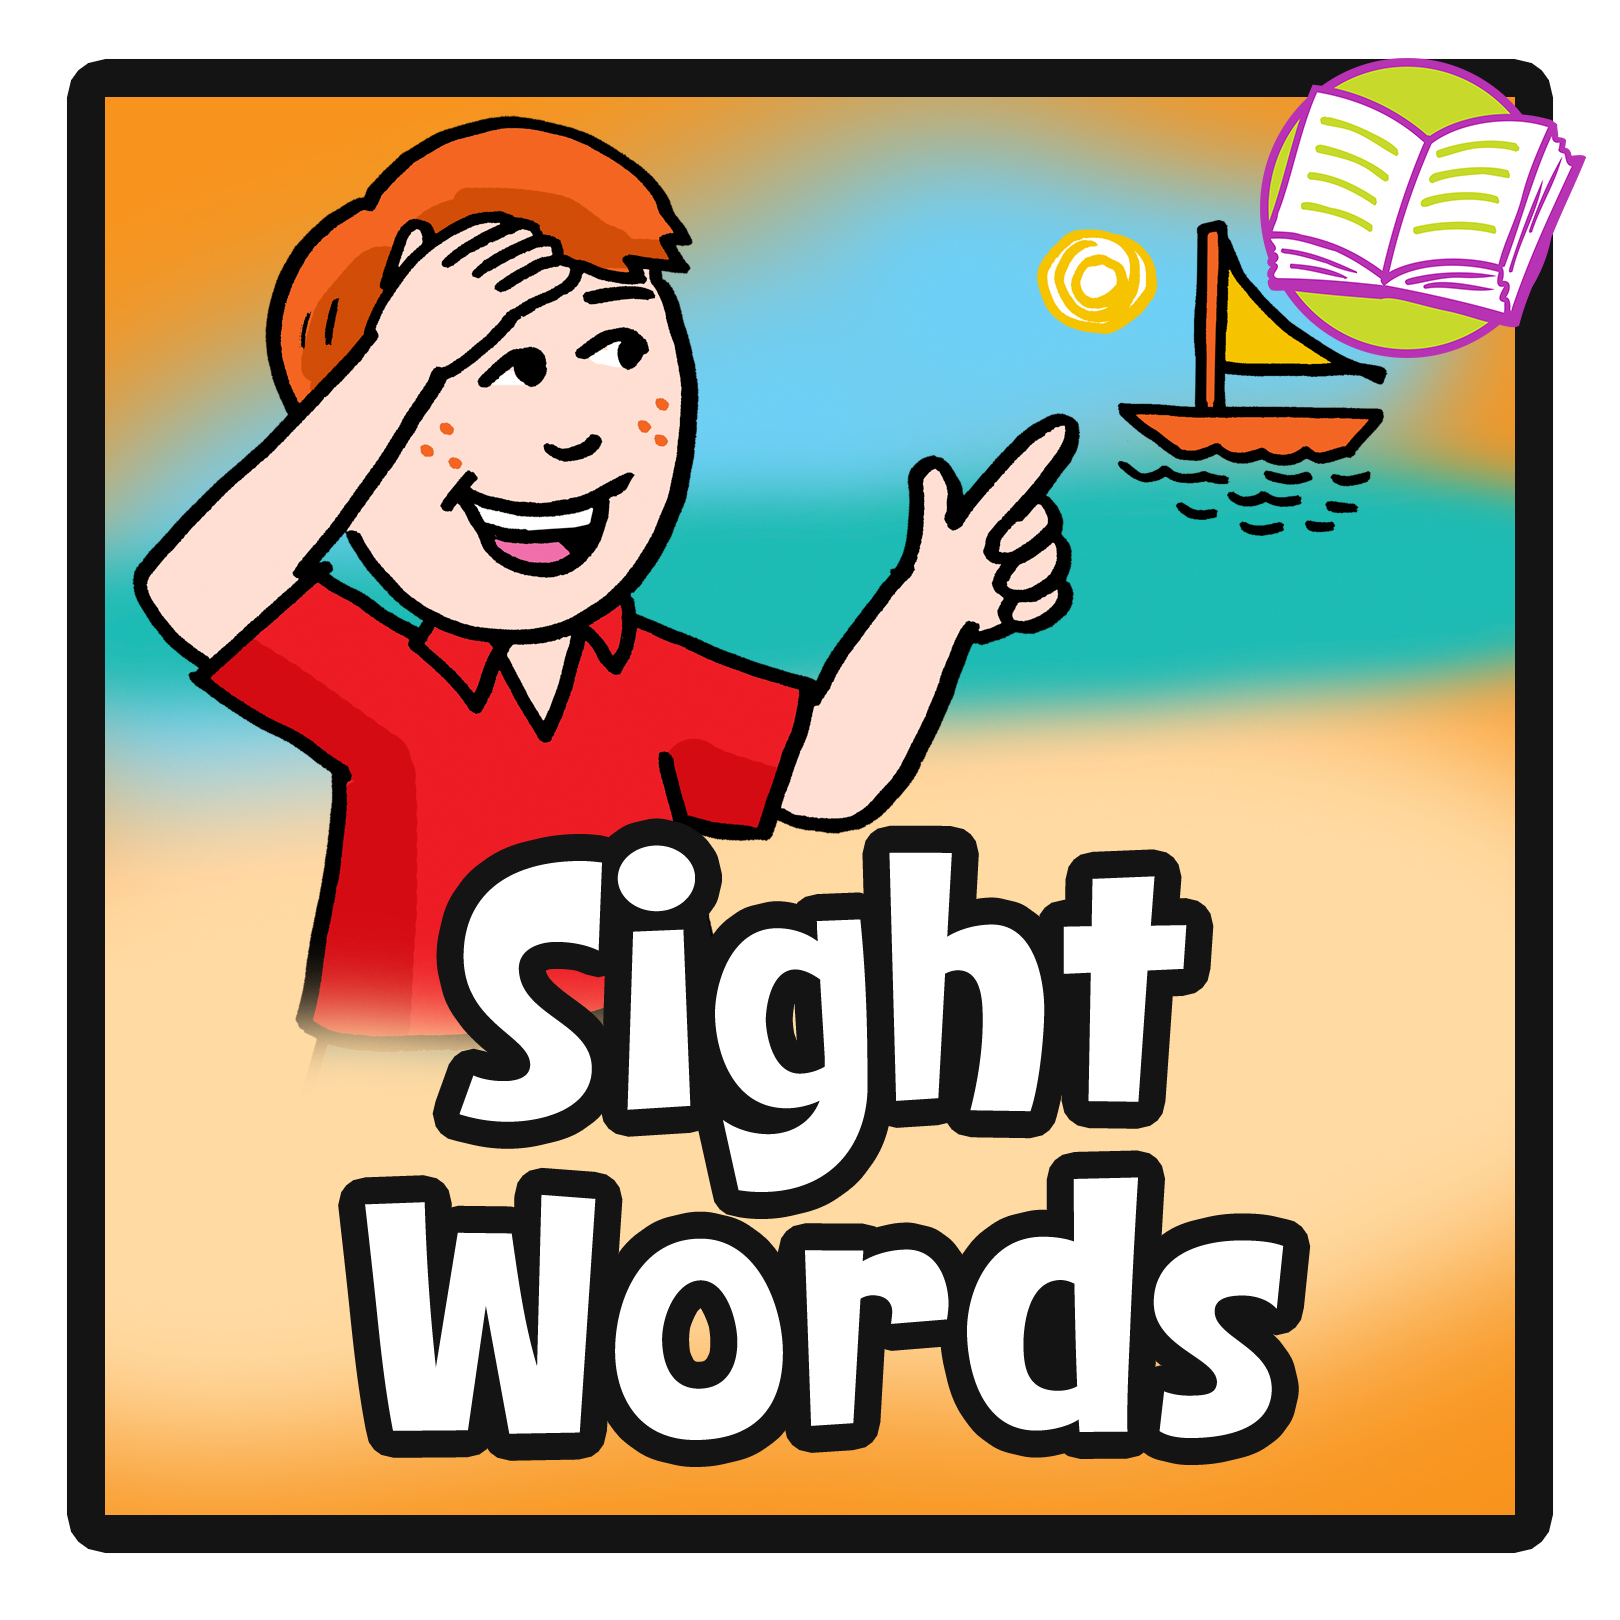 Word clipart sight word Cliparts Zone collection Cliparts Sight